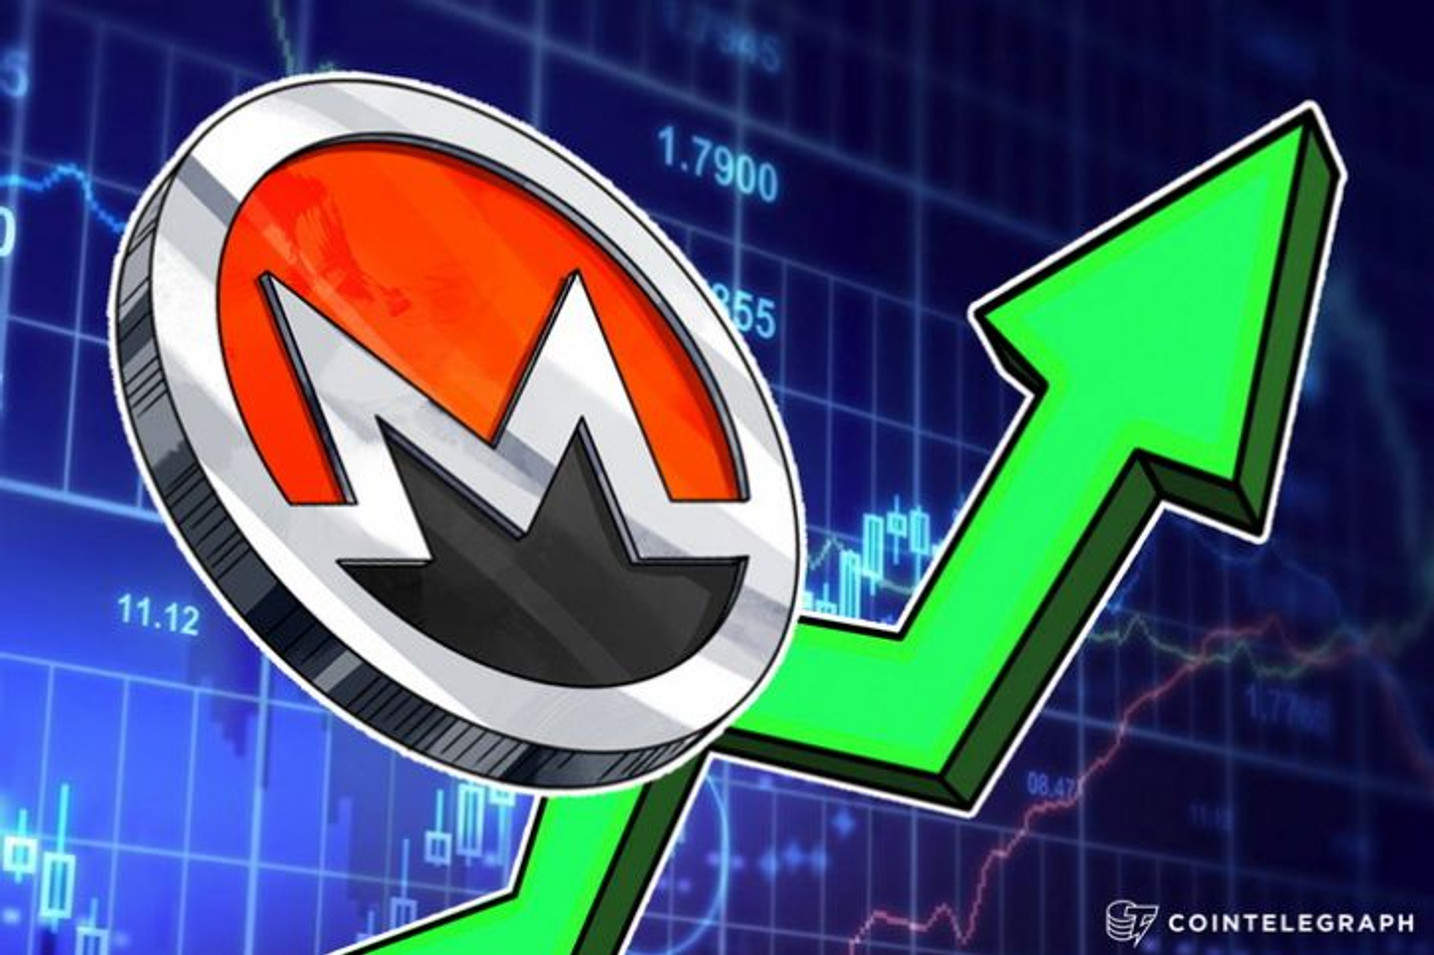 Monero Price Jumps Over 40 Percent on Rumors It Will Soon Debut on Bithumb Exchange